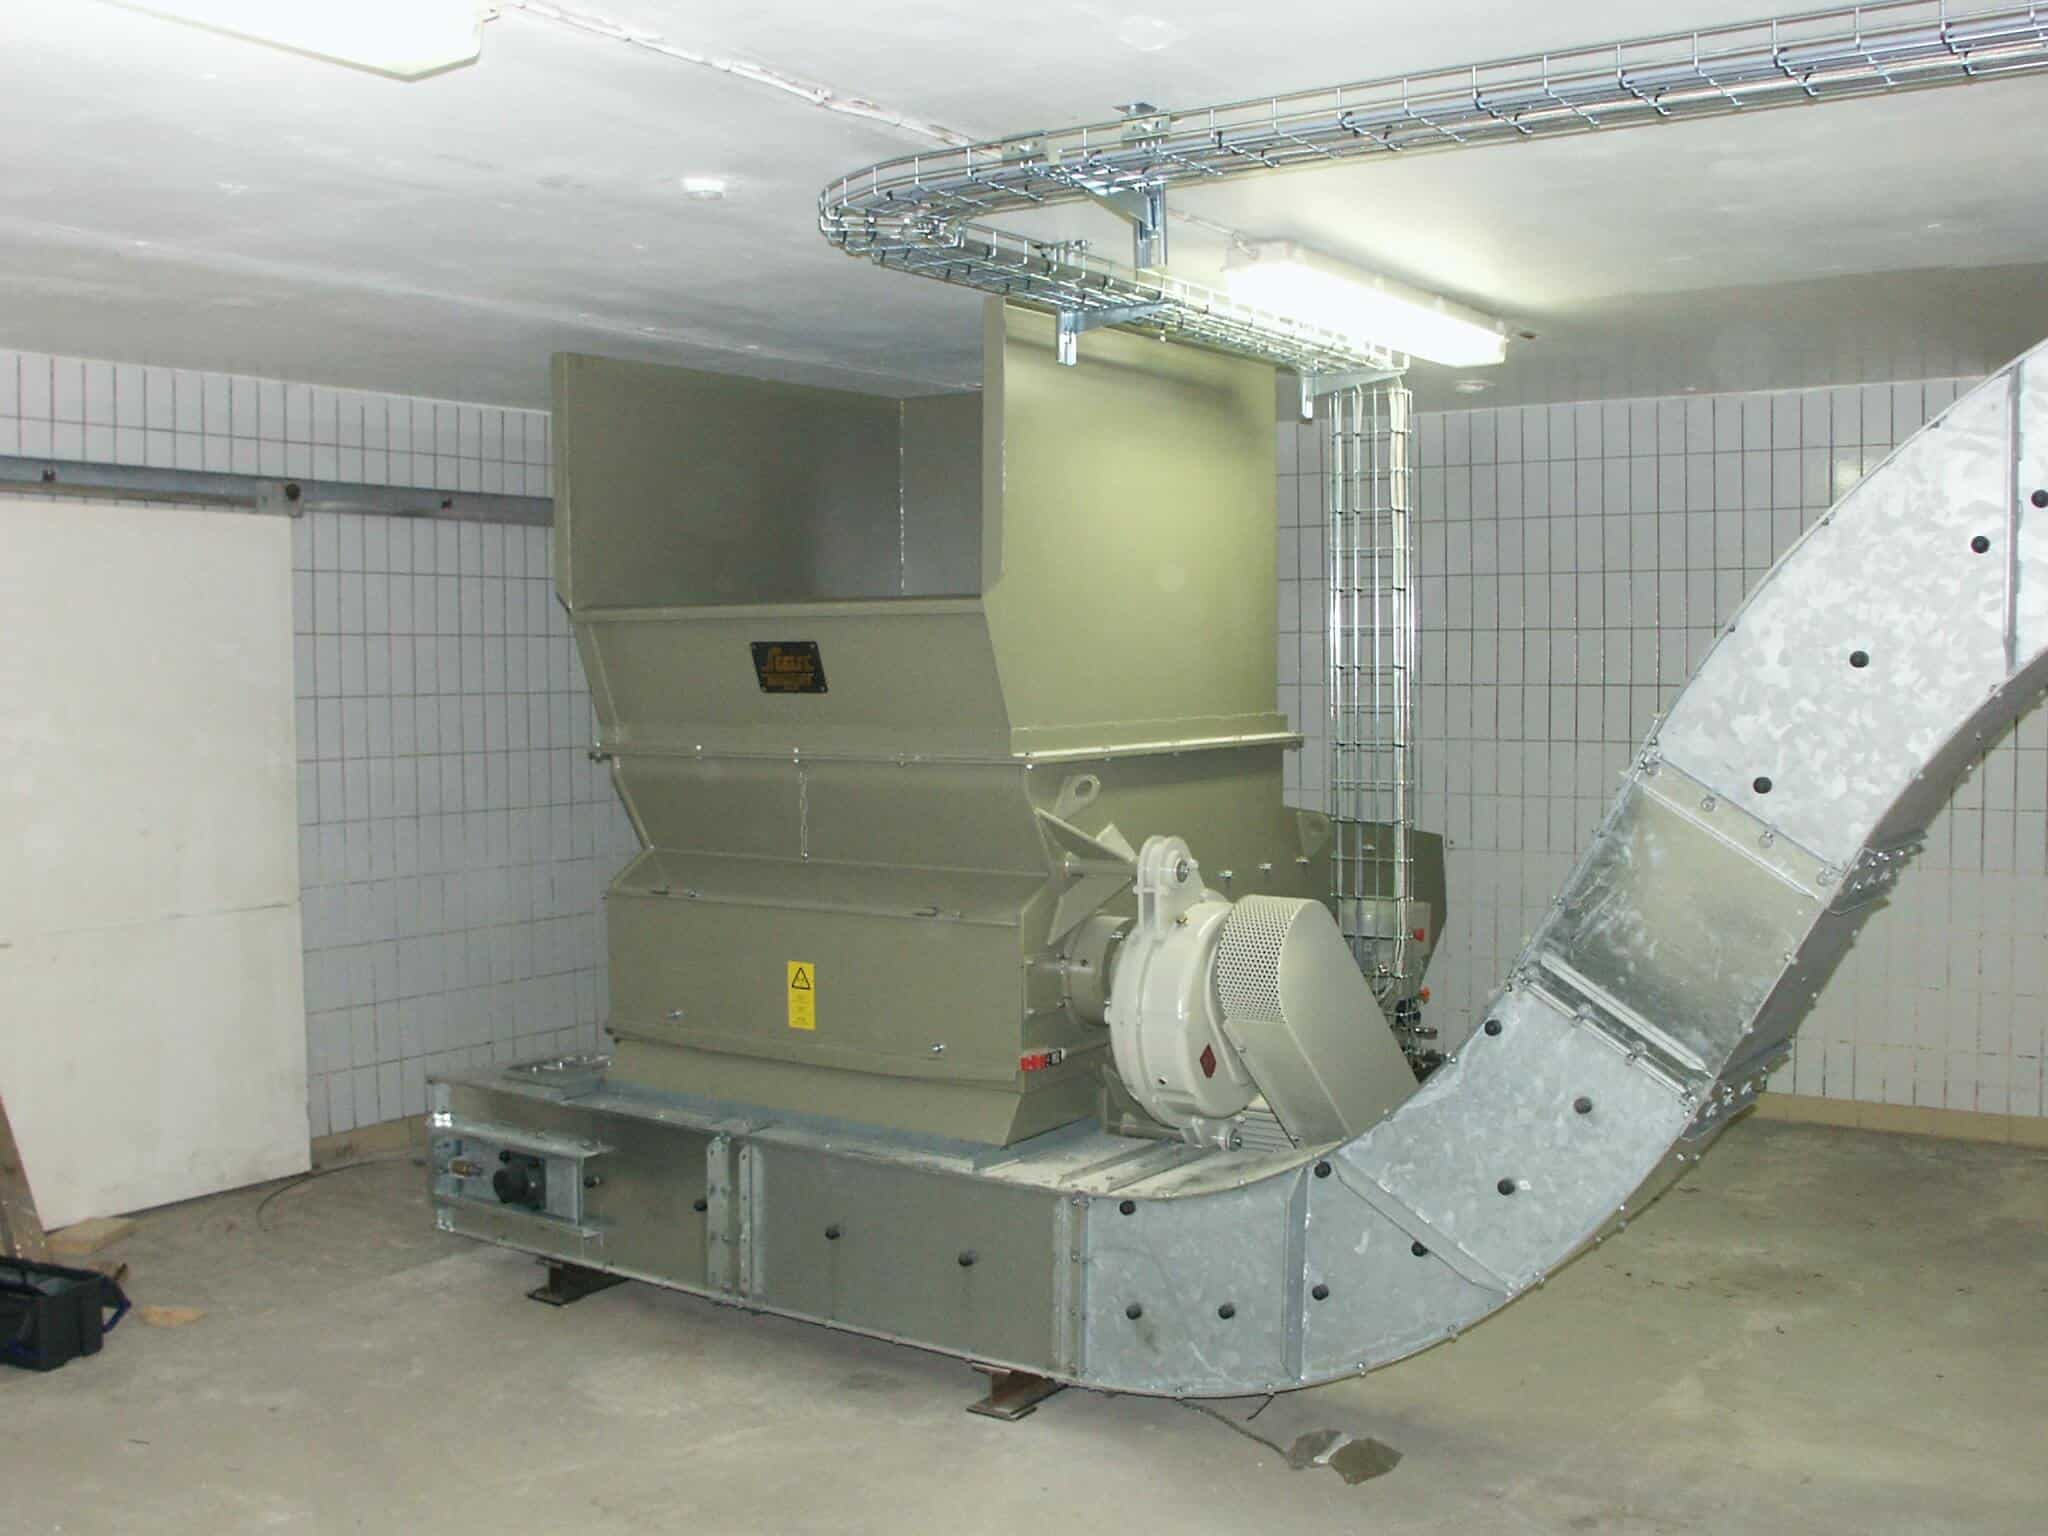 Scanhugger at production facility with conveyor